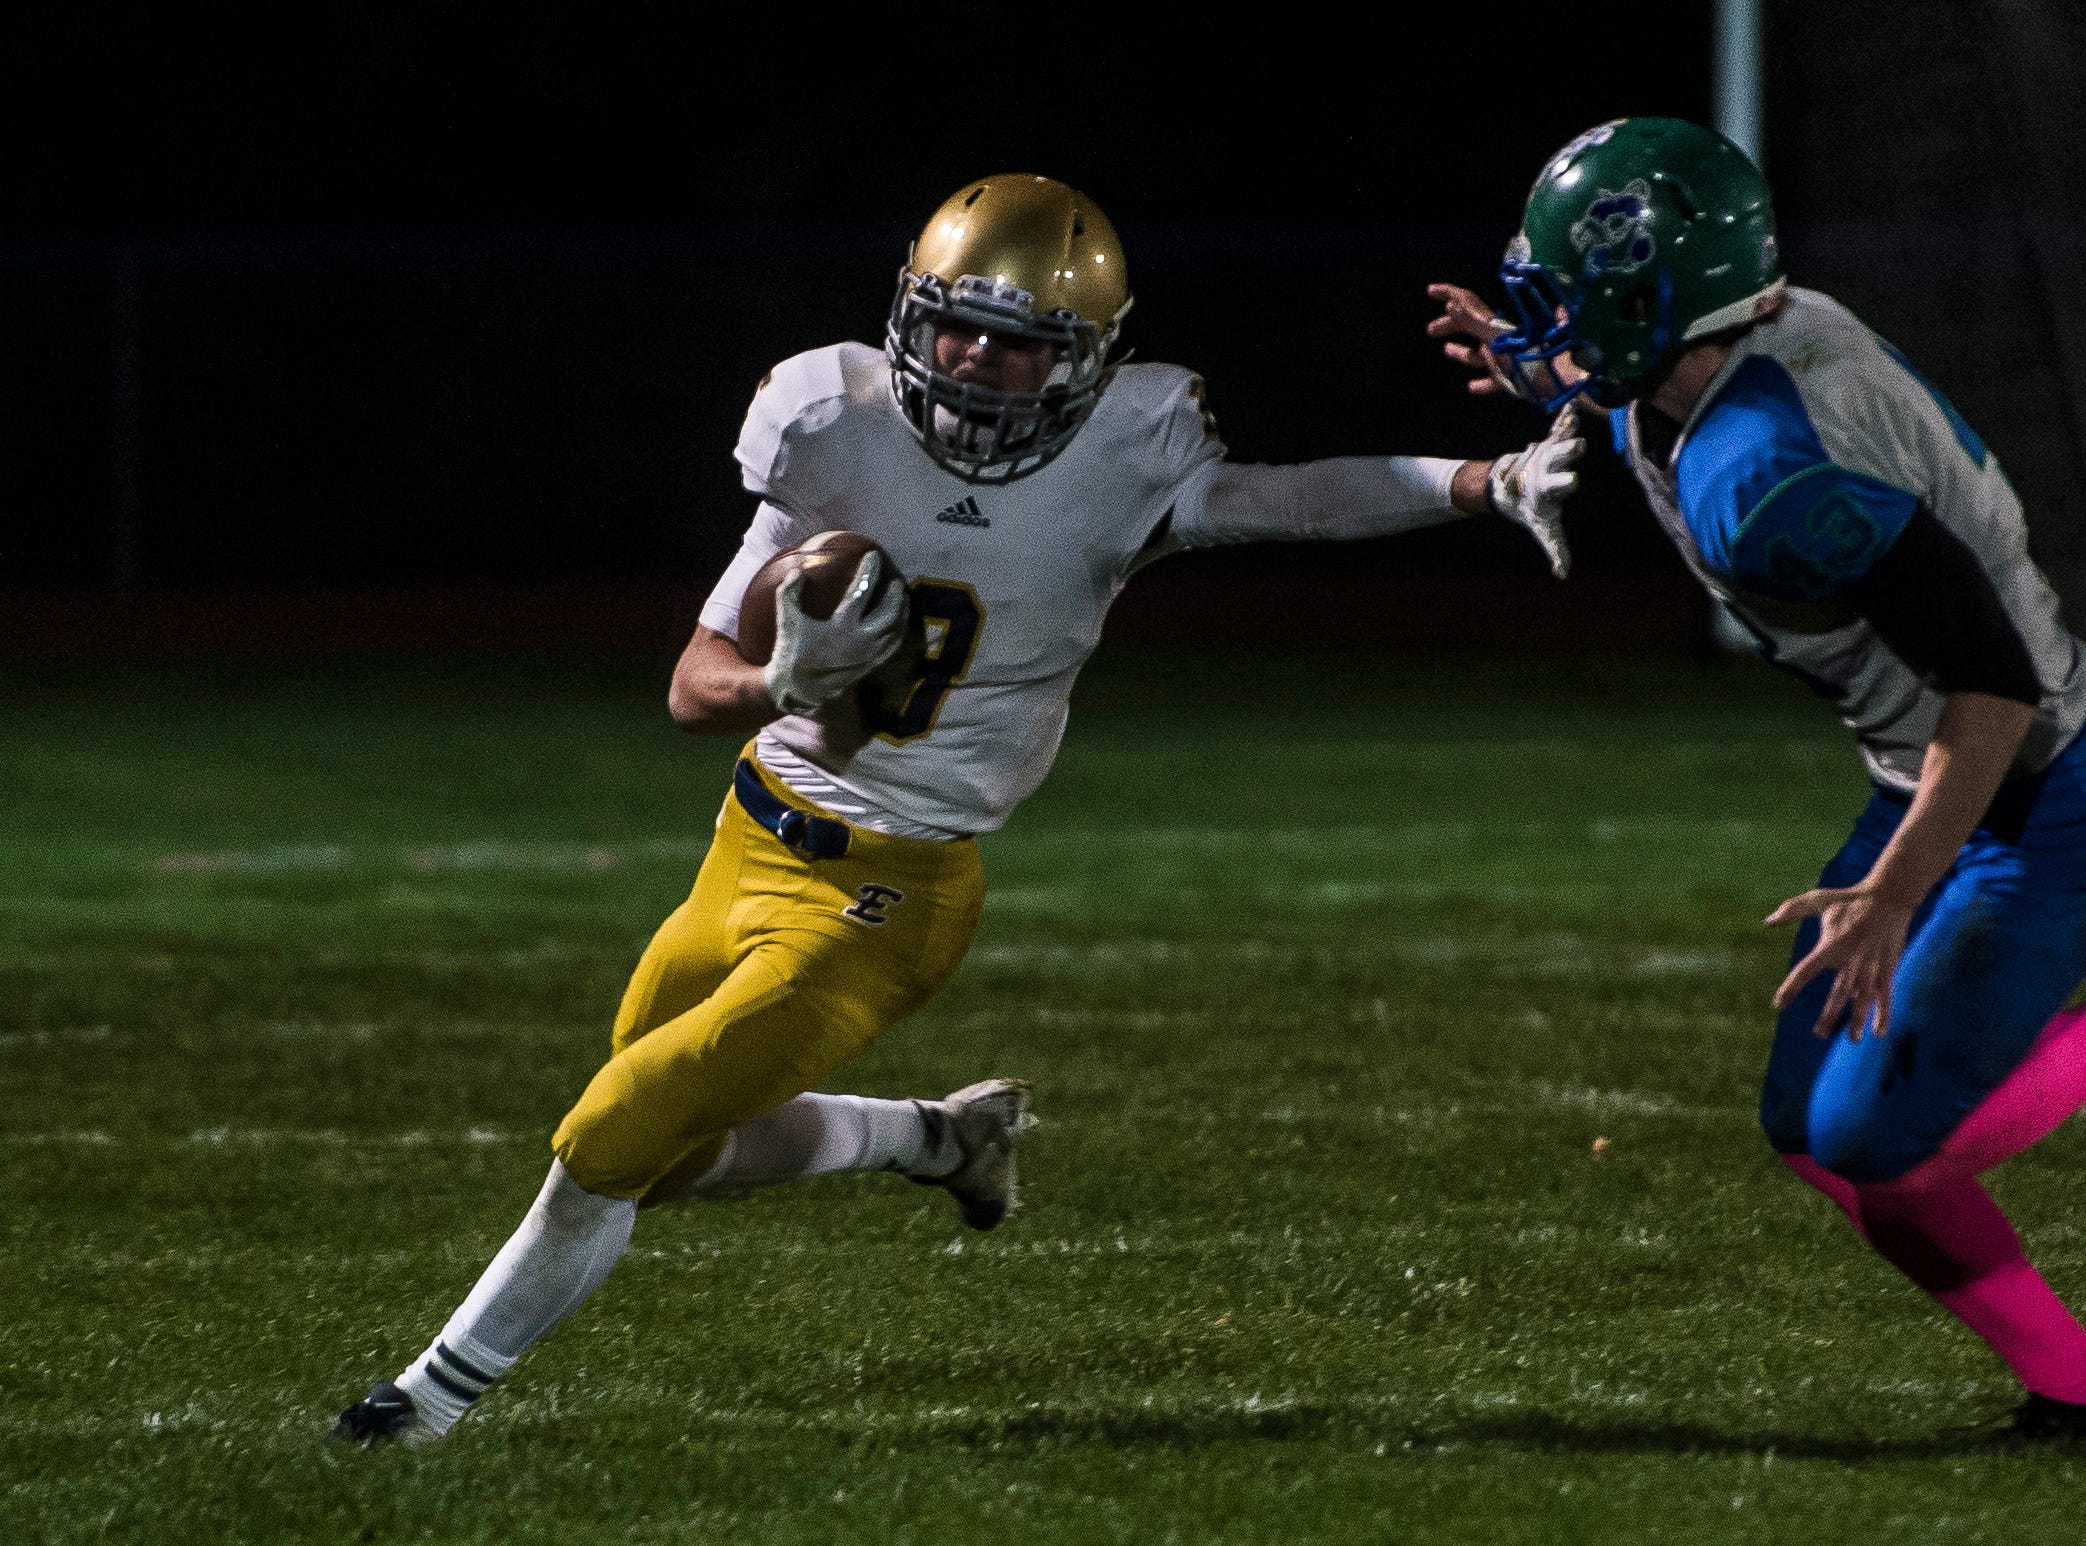 Essex #3 Tyler Millette runs past Colchester #43 Max Anderson during their football game Friday night, Oct. 5, 2018, at Colchester High School. The Lakers won, 28-7.